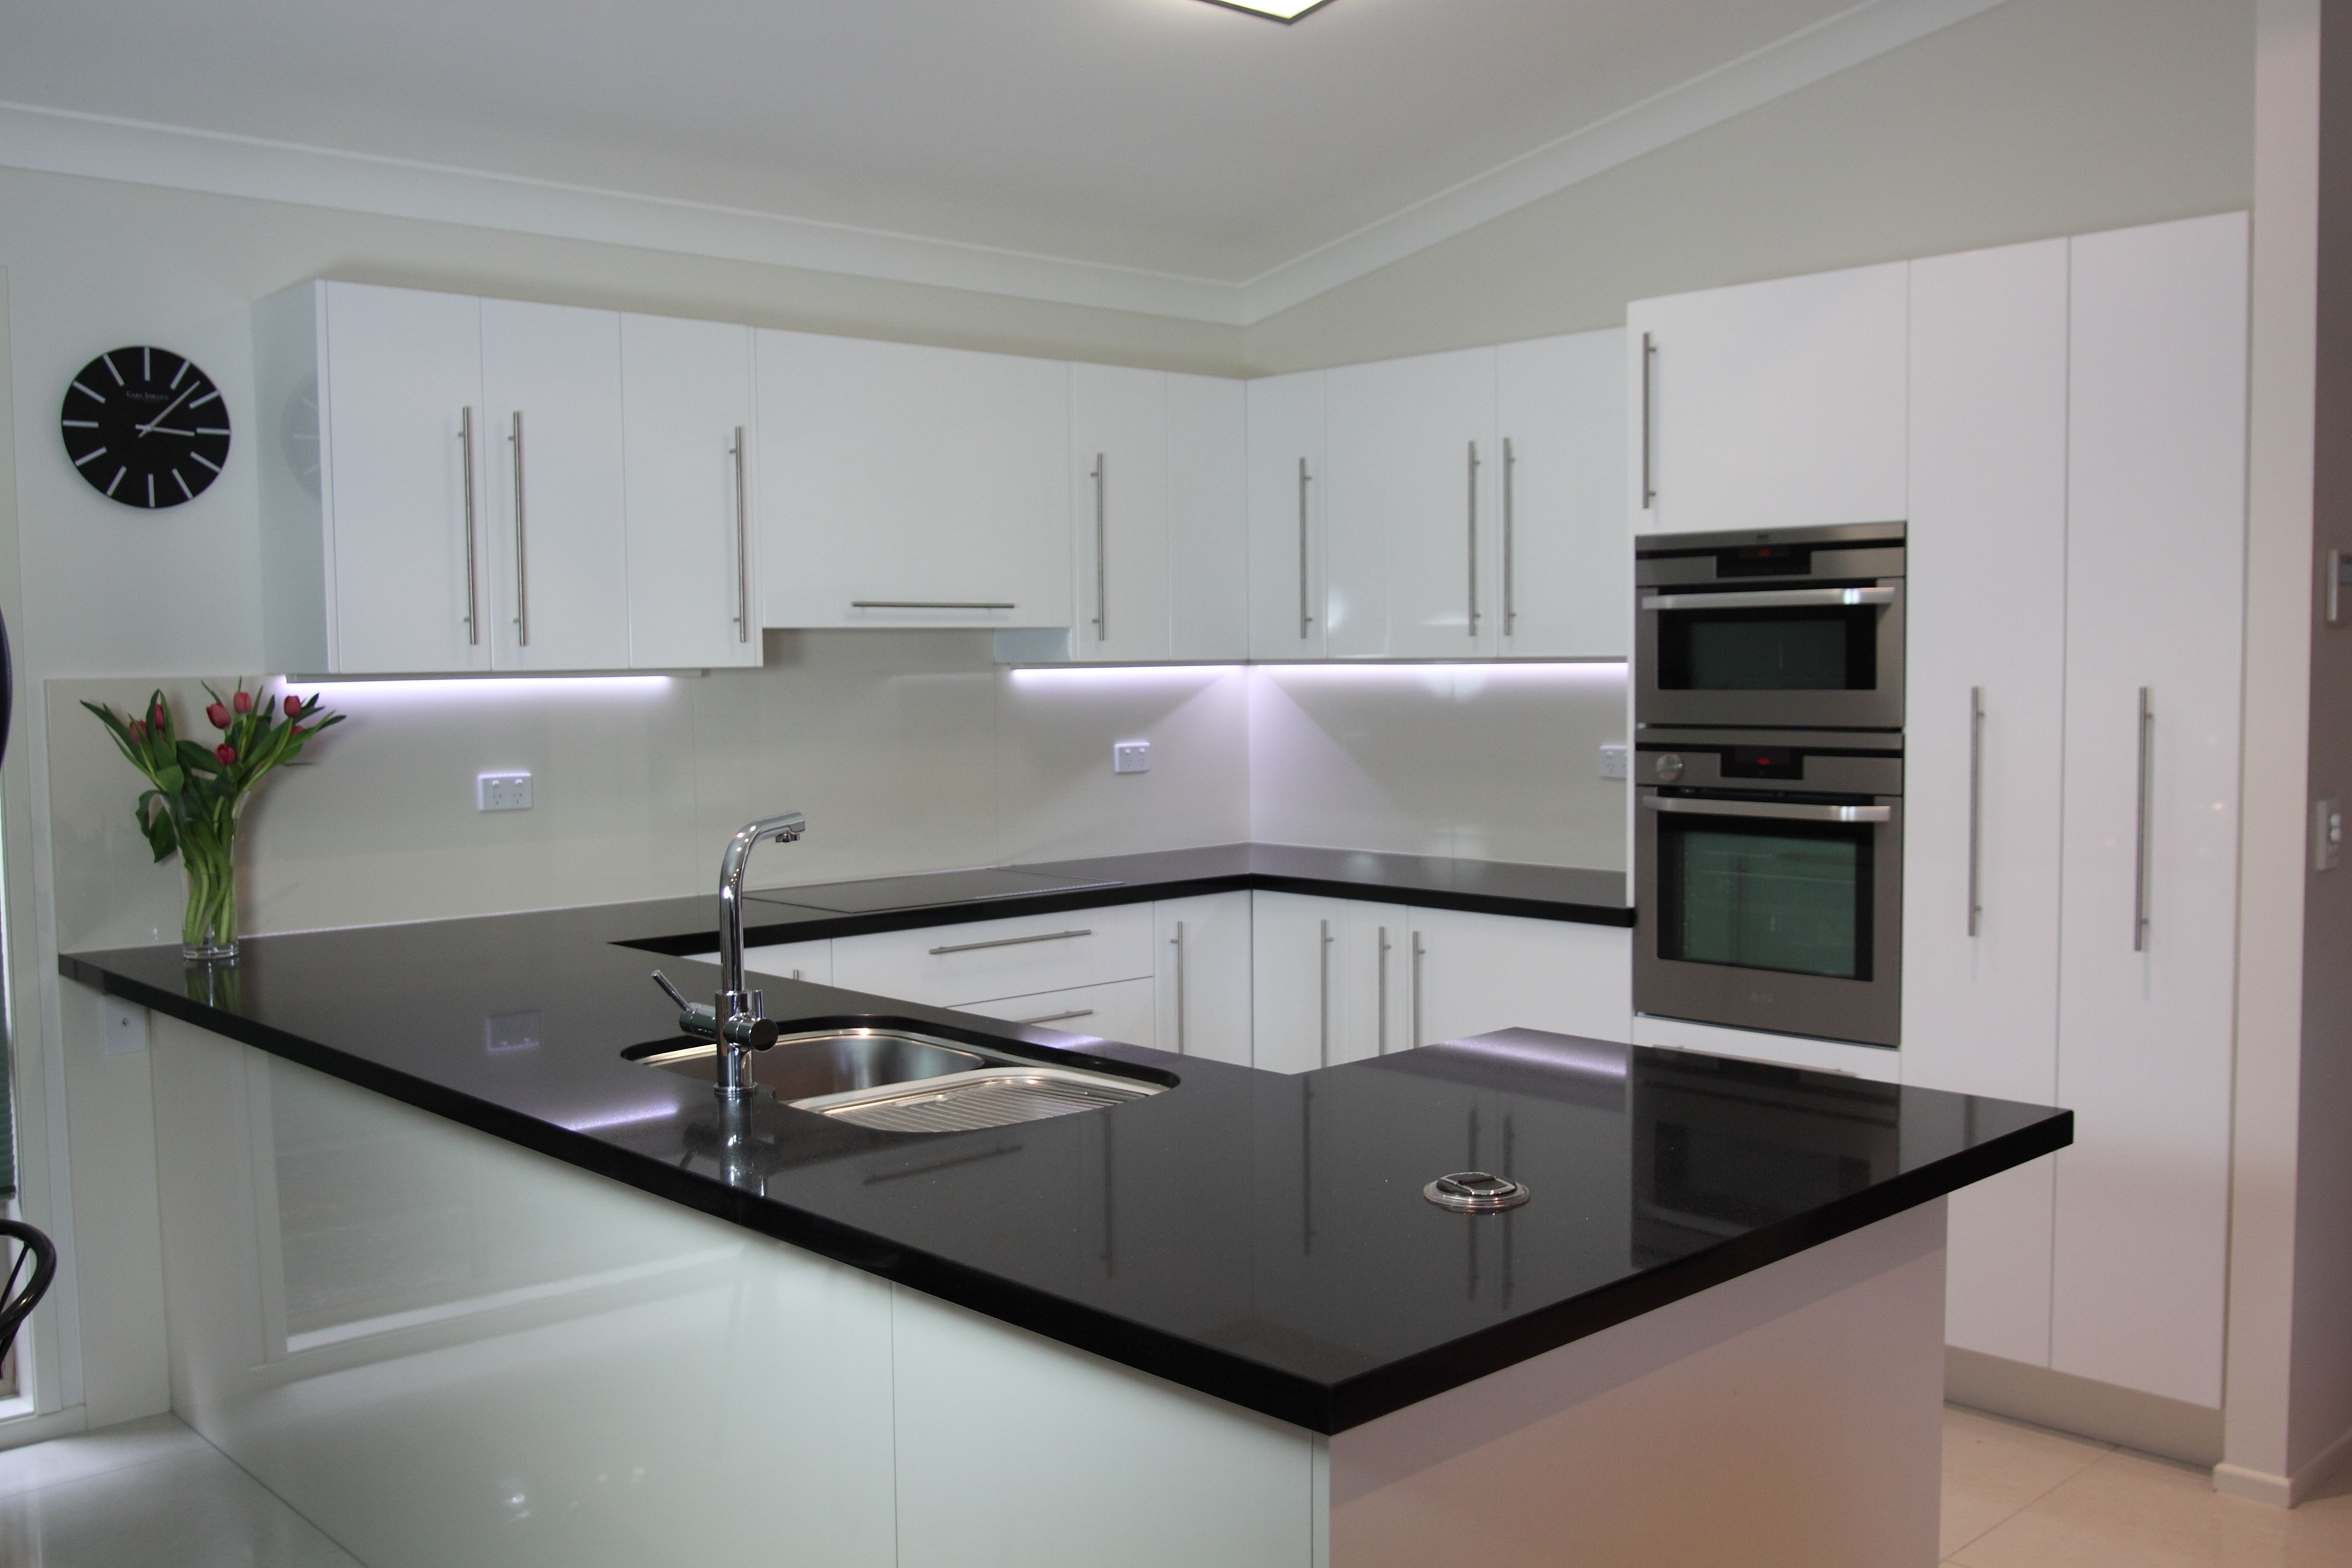 Black benchtop, white cupboards. Classic style that never